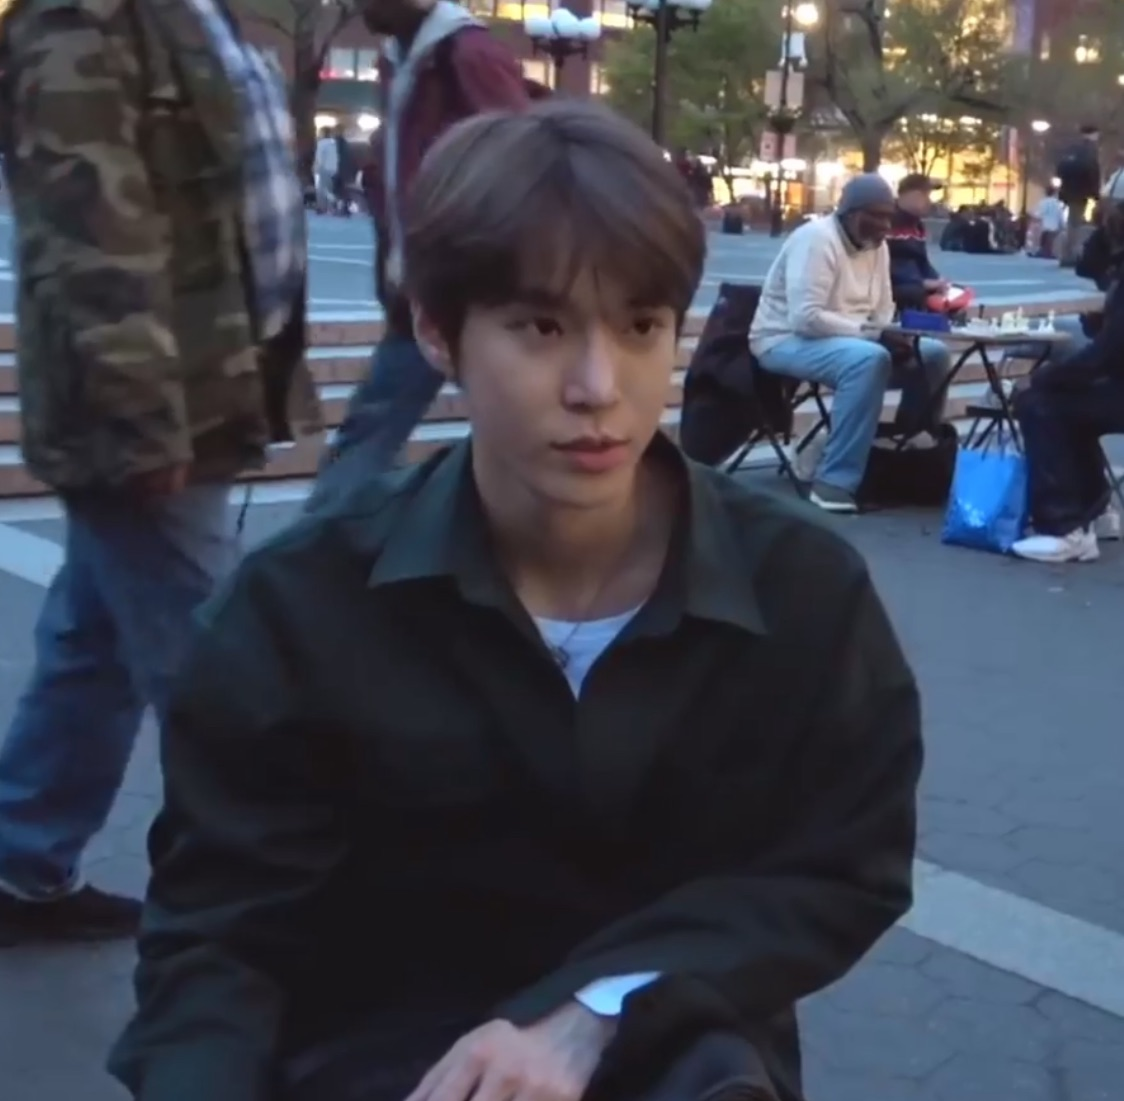 RT @HourlyDoyoung: #도영 #DOYOUNG @NCTsmtown_127 #NCT127 https://t.co/mSh6RDyRd0